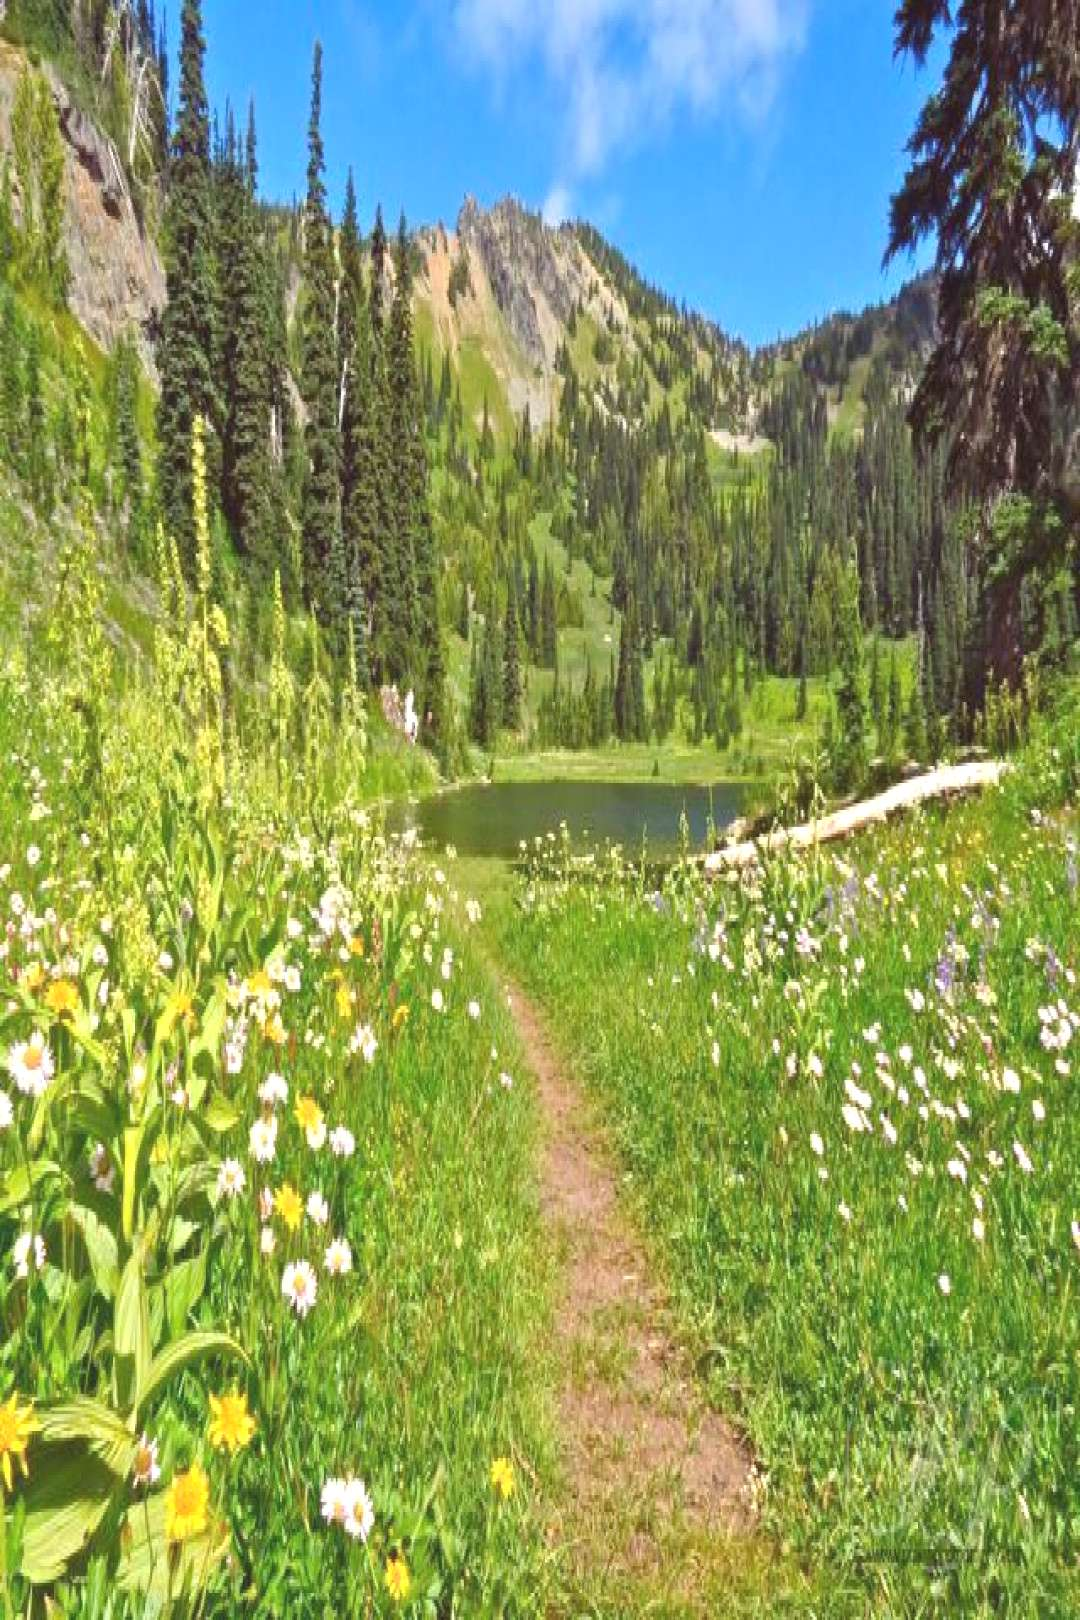 Hunting   hiking the pacific crest trail, hiking pct pacific crest trail, pacific crest trail pla